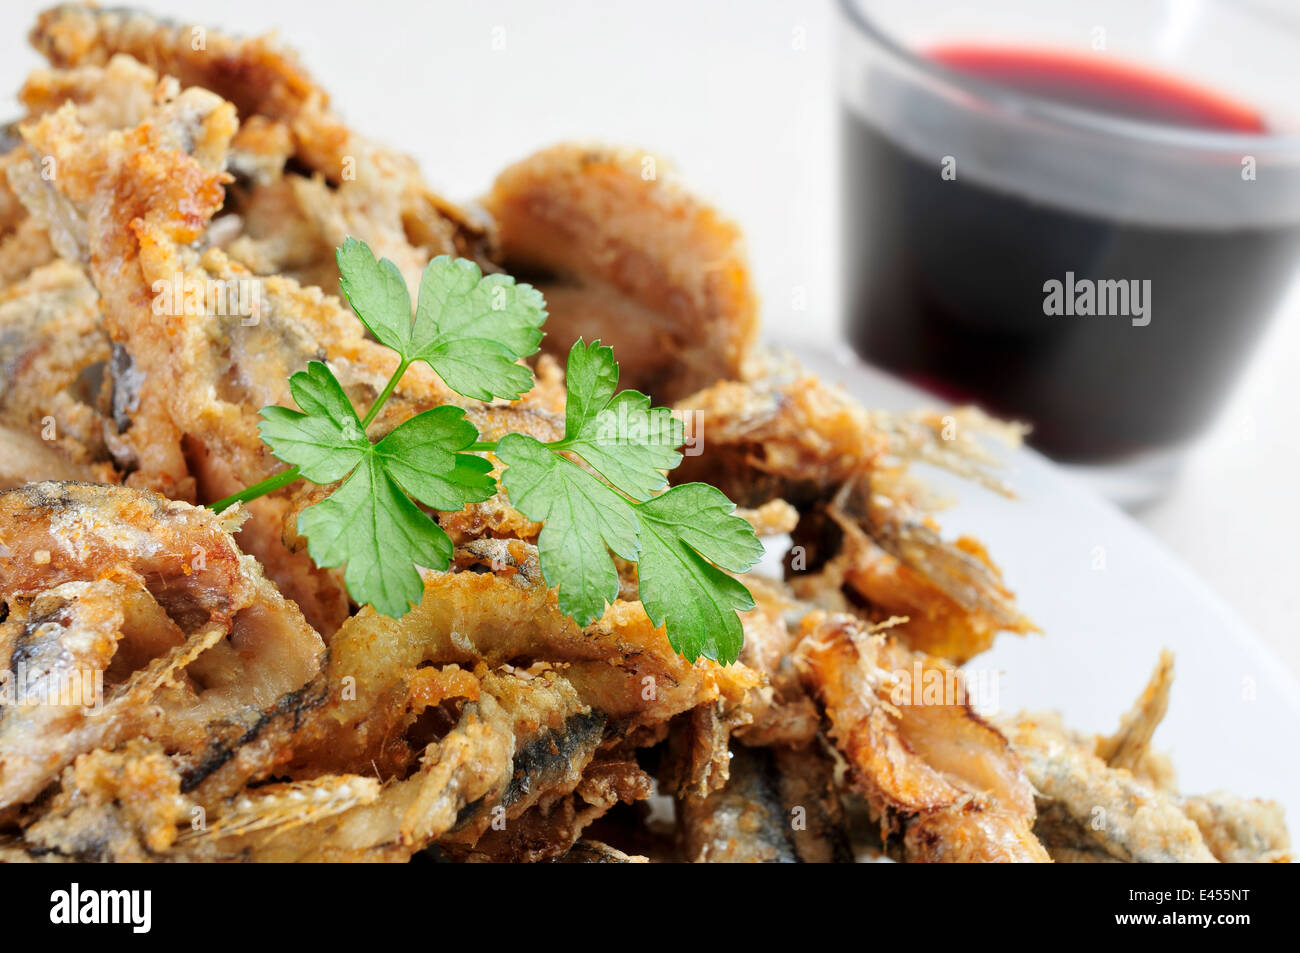 a plate with some spanish boquerones fritos, fried anchovies typical in Spain, served as tapas - Stock Image